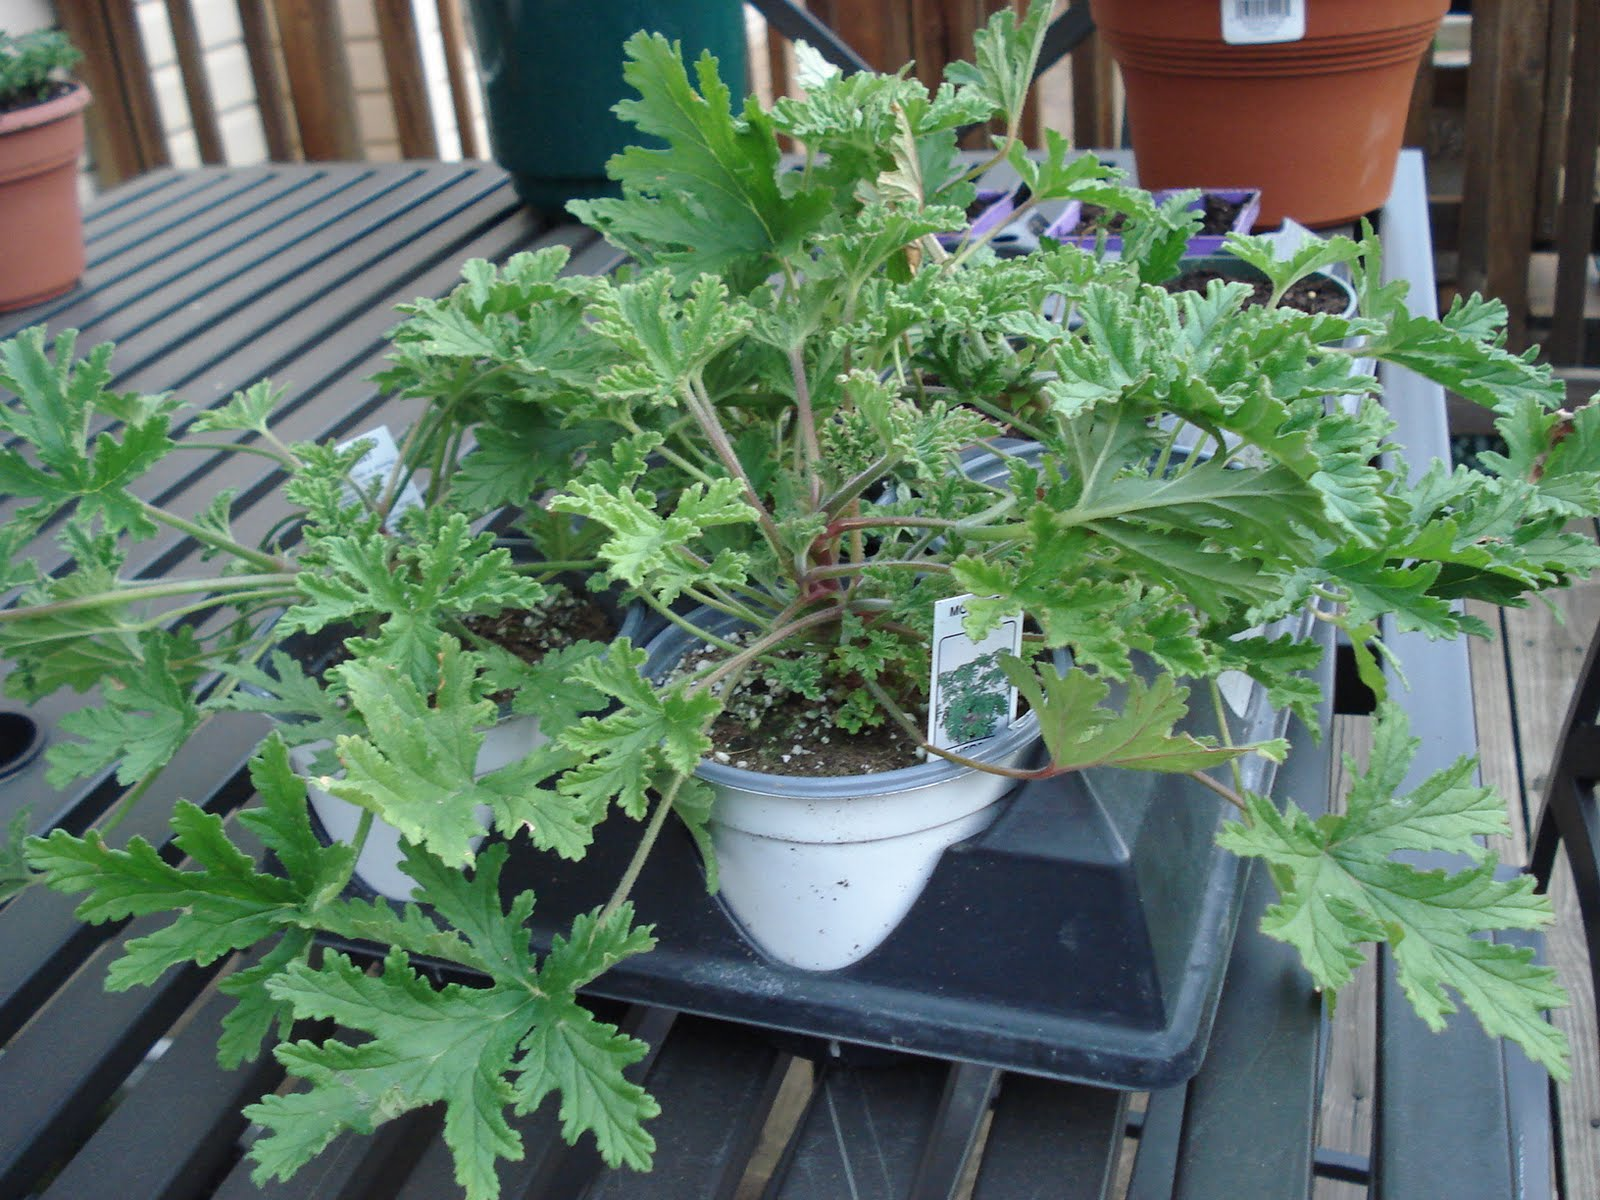 Bumble Lush Garden Citronella Plants Grow Your Own Mosquito